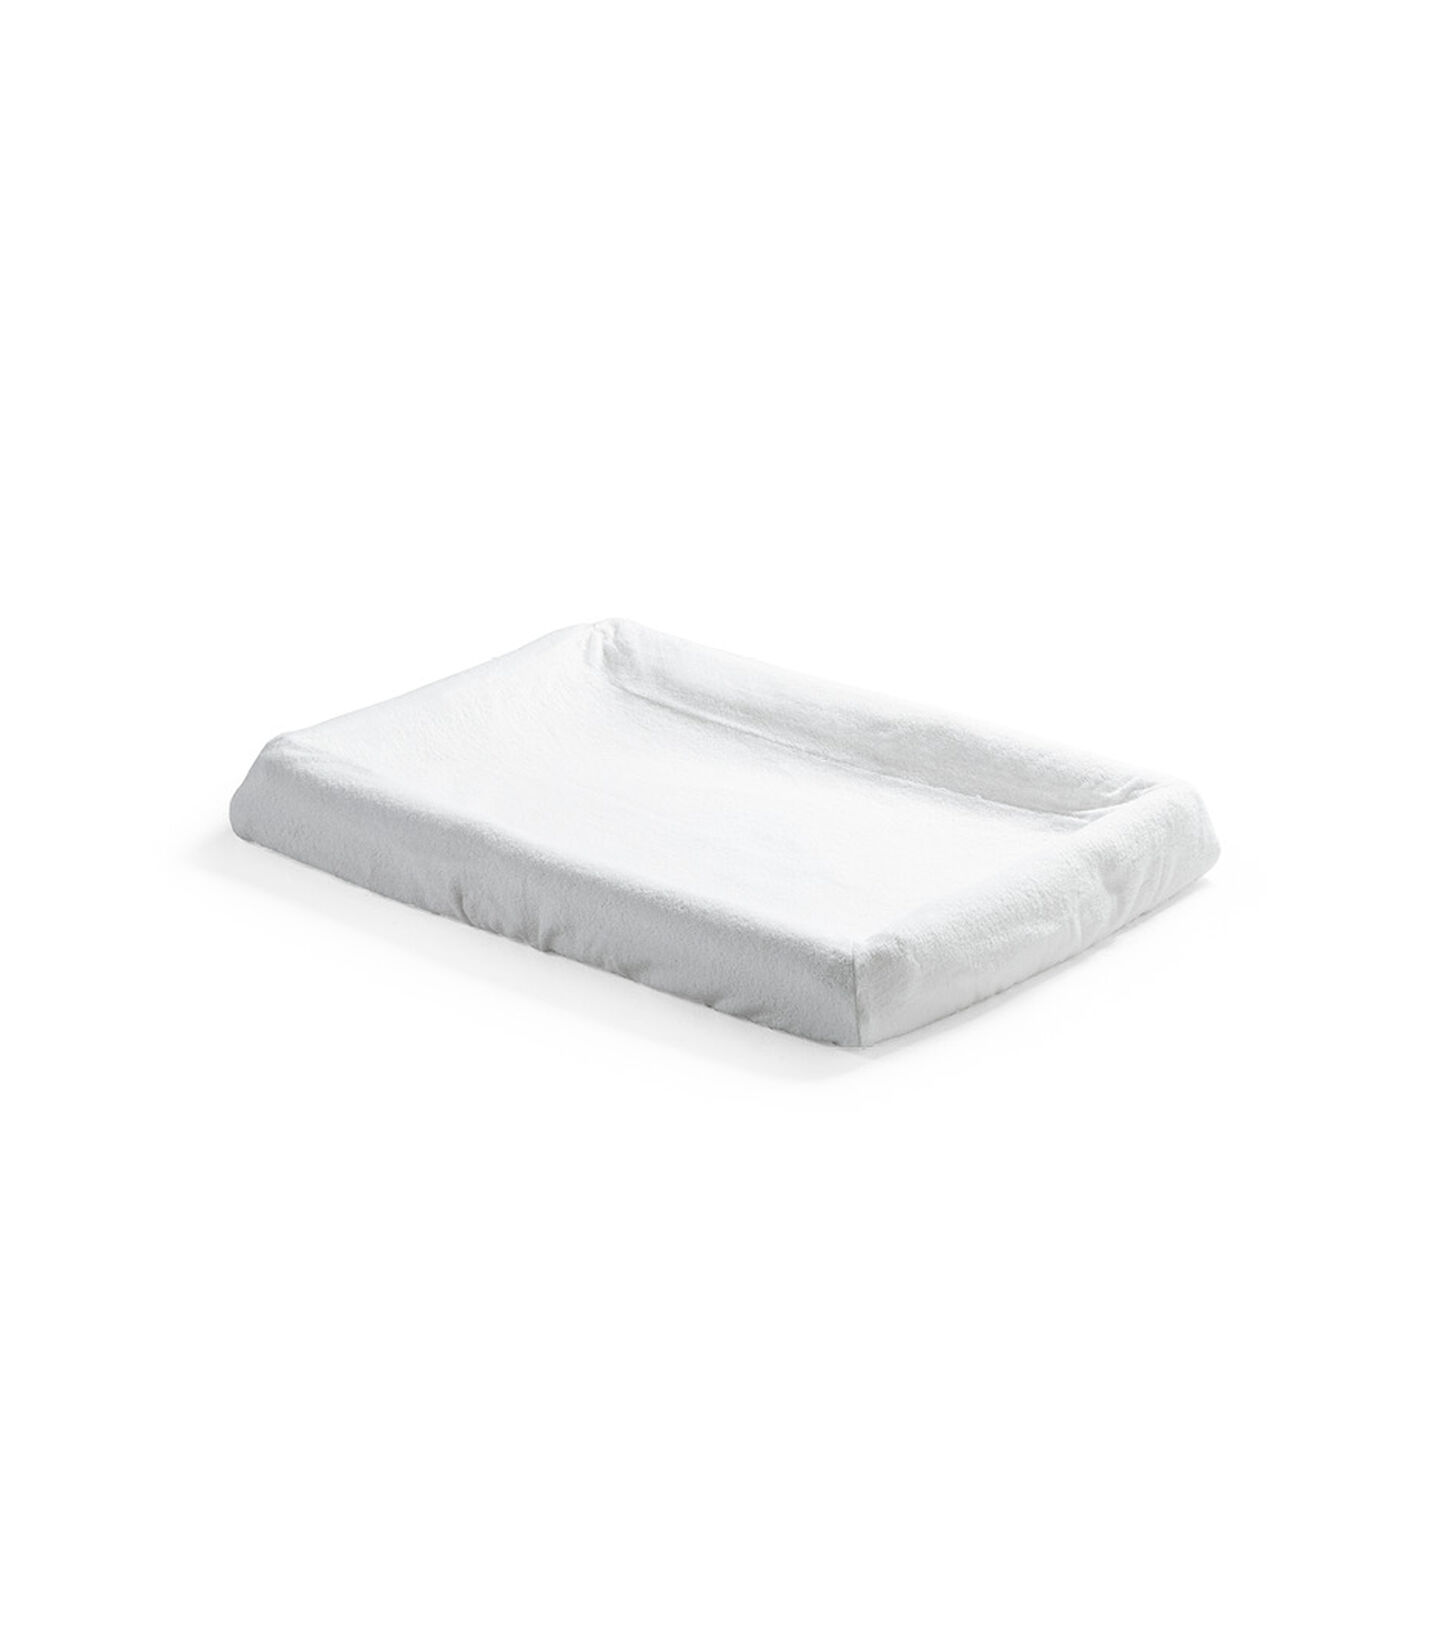 Stokke® Home™ Changer Mattress Cover. Sold separately. view 1